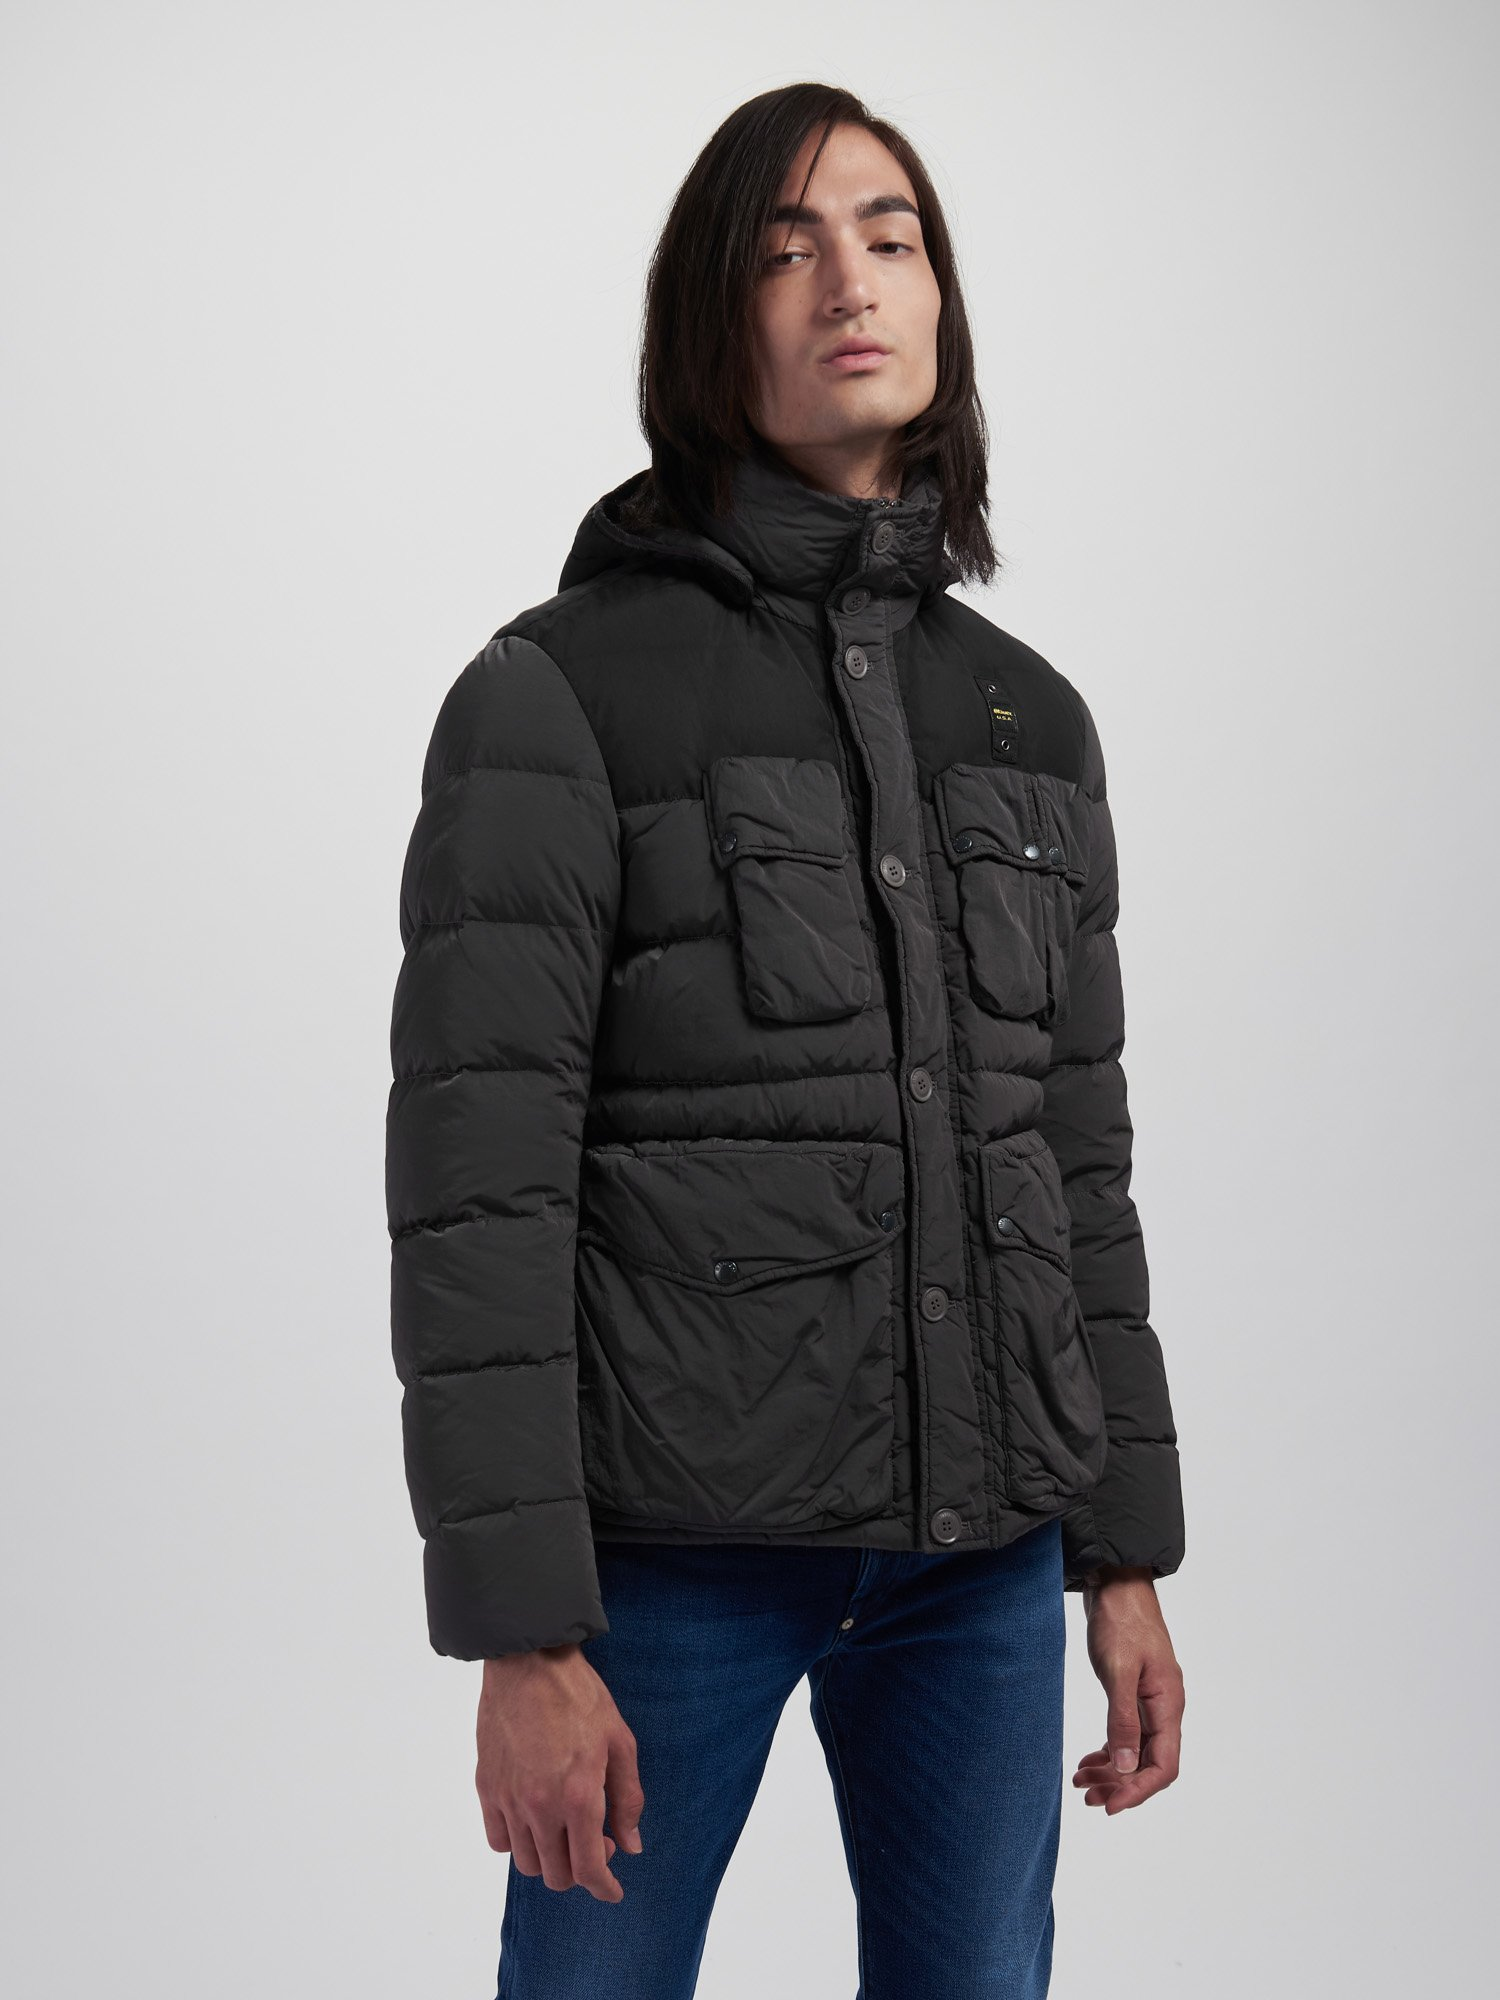 CARL DOWN JACKET IN NYLON AND TASLAN - Blauer